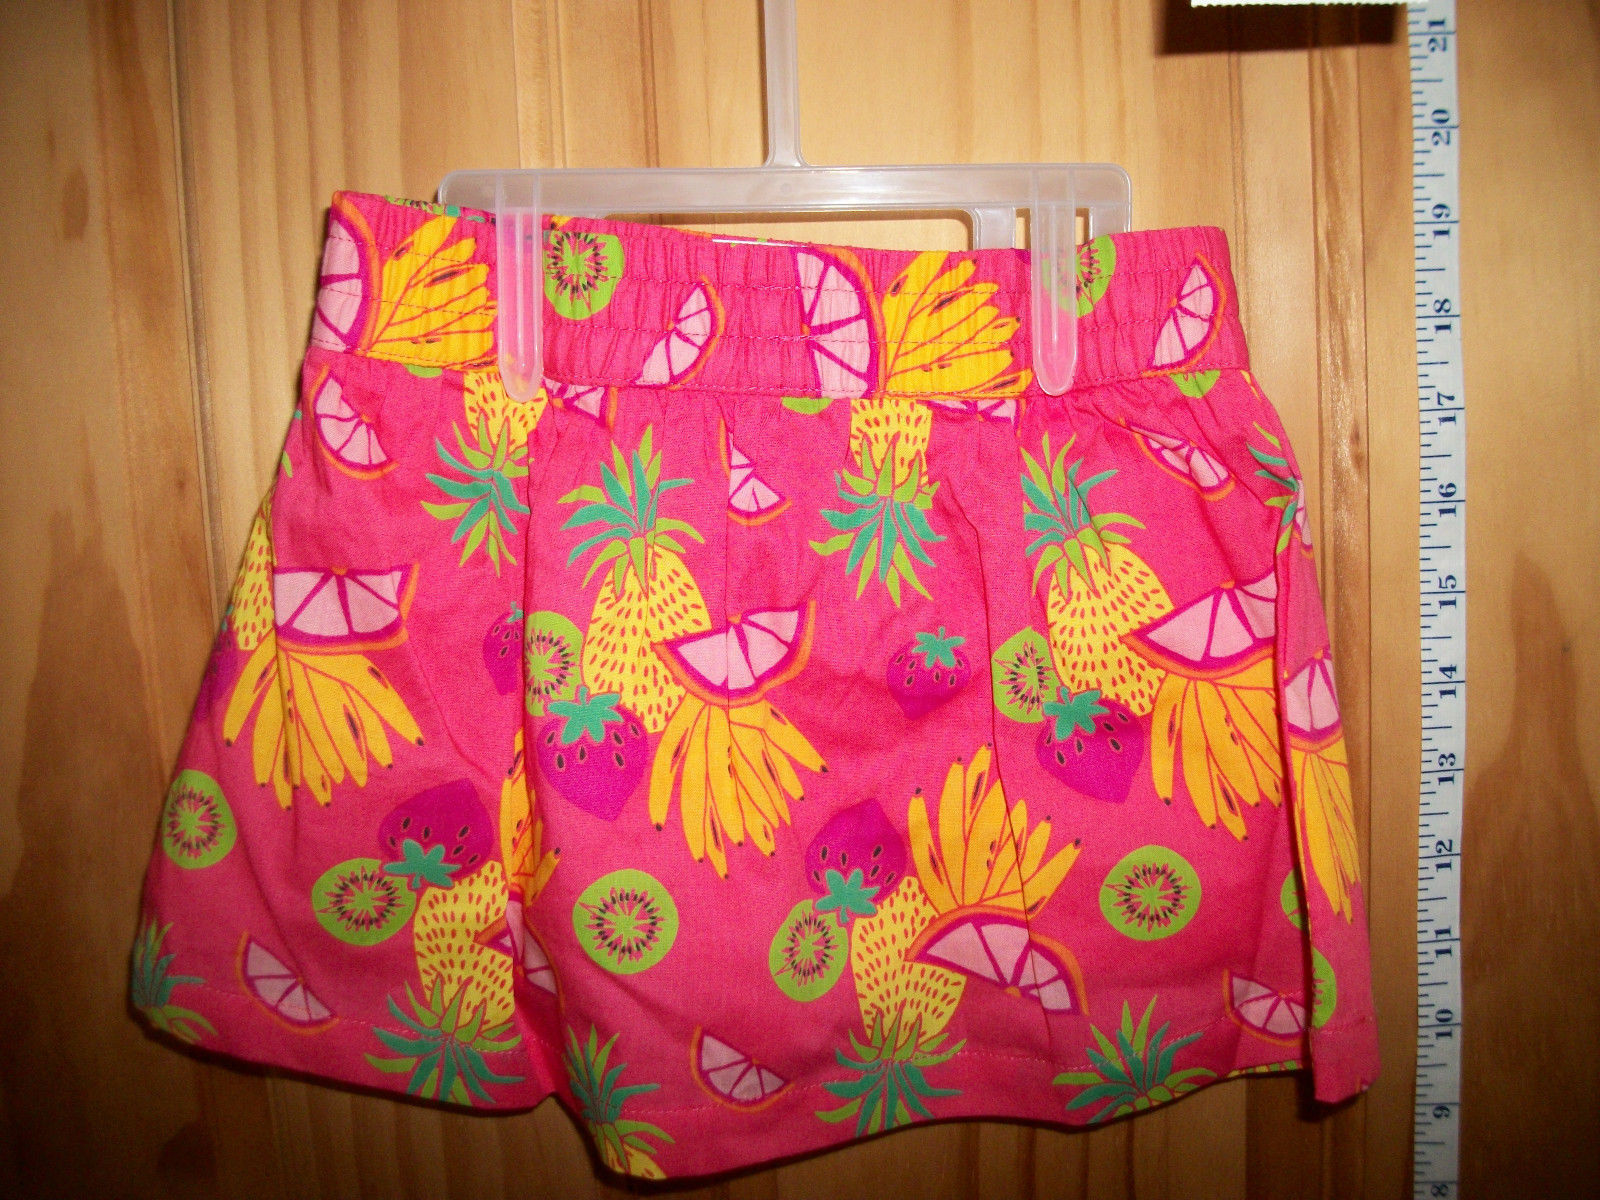 Fashion Gift Healthtex Baby Clothes 24M Girl Skort Outfit Pink Tropical Top Set